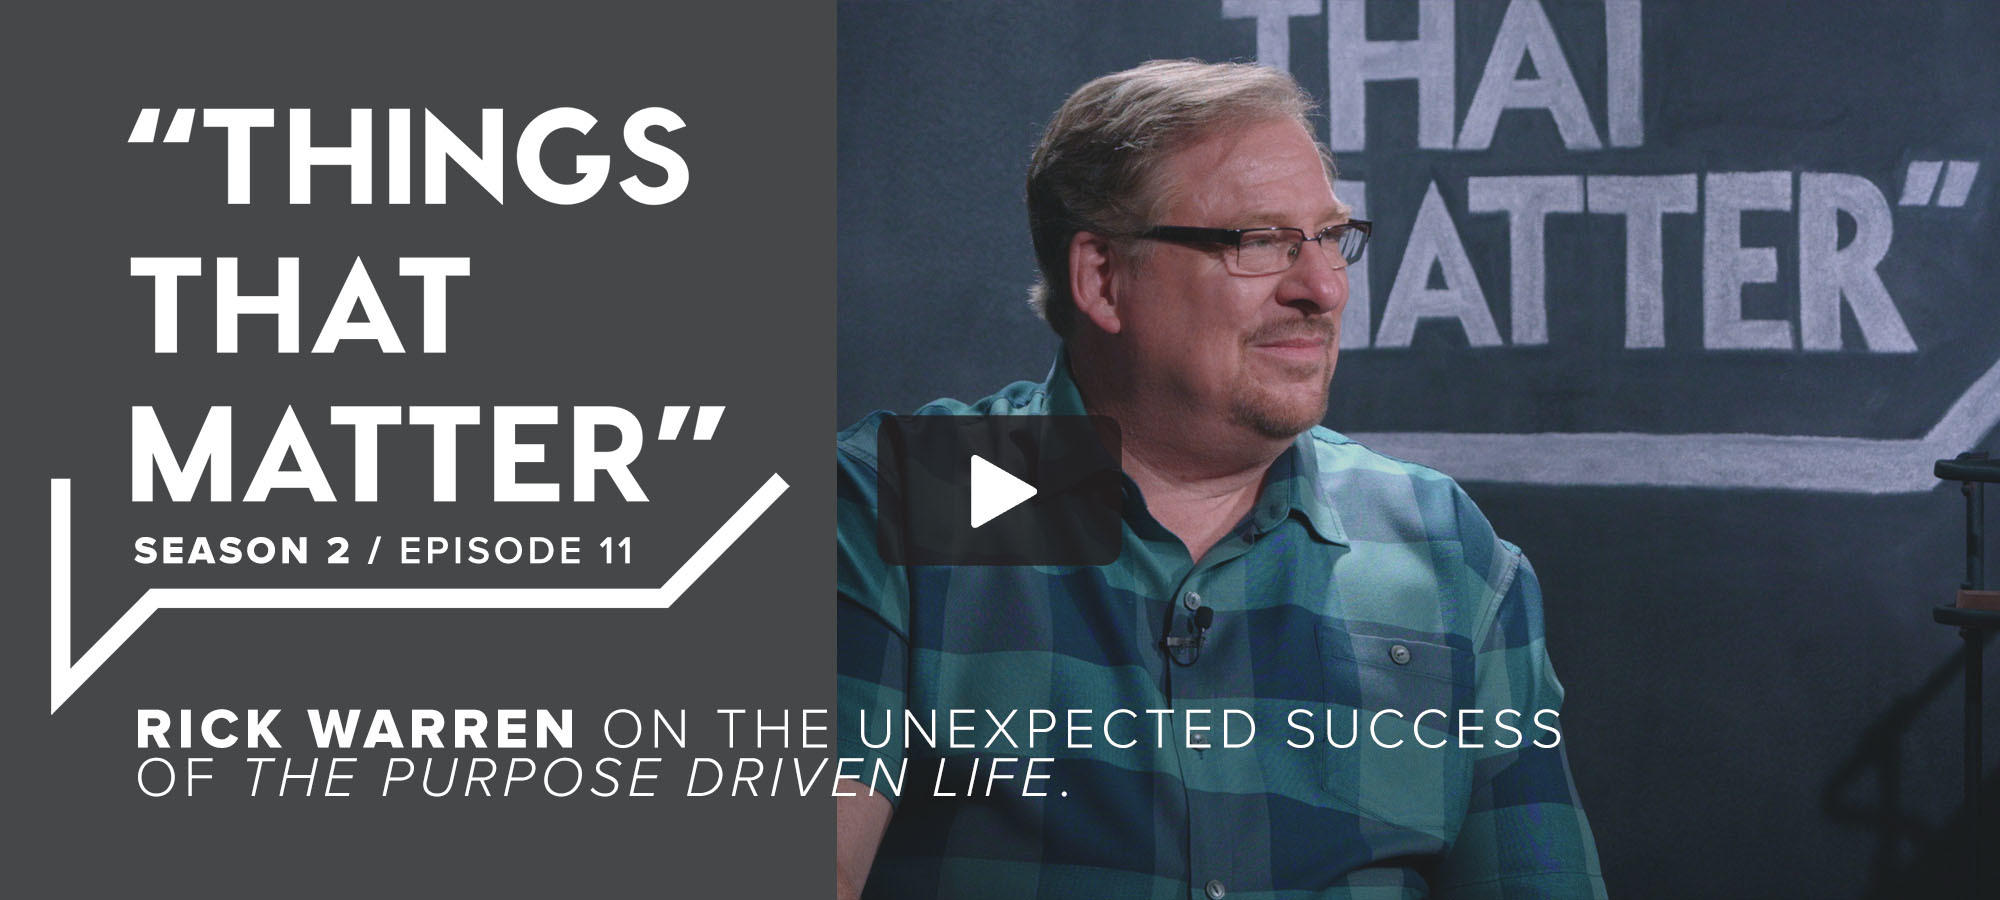 TTM S2 E11 - Rick Warren on the Unexpected Success of The Purpose Driven Life